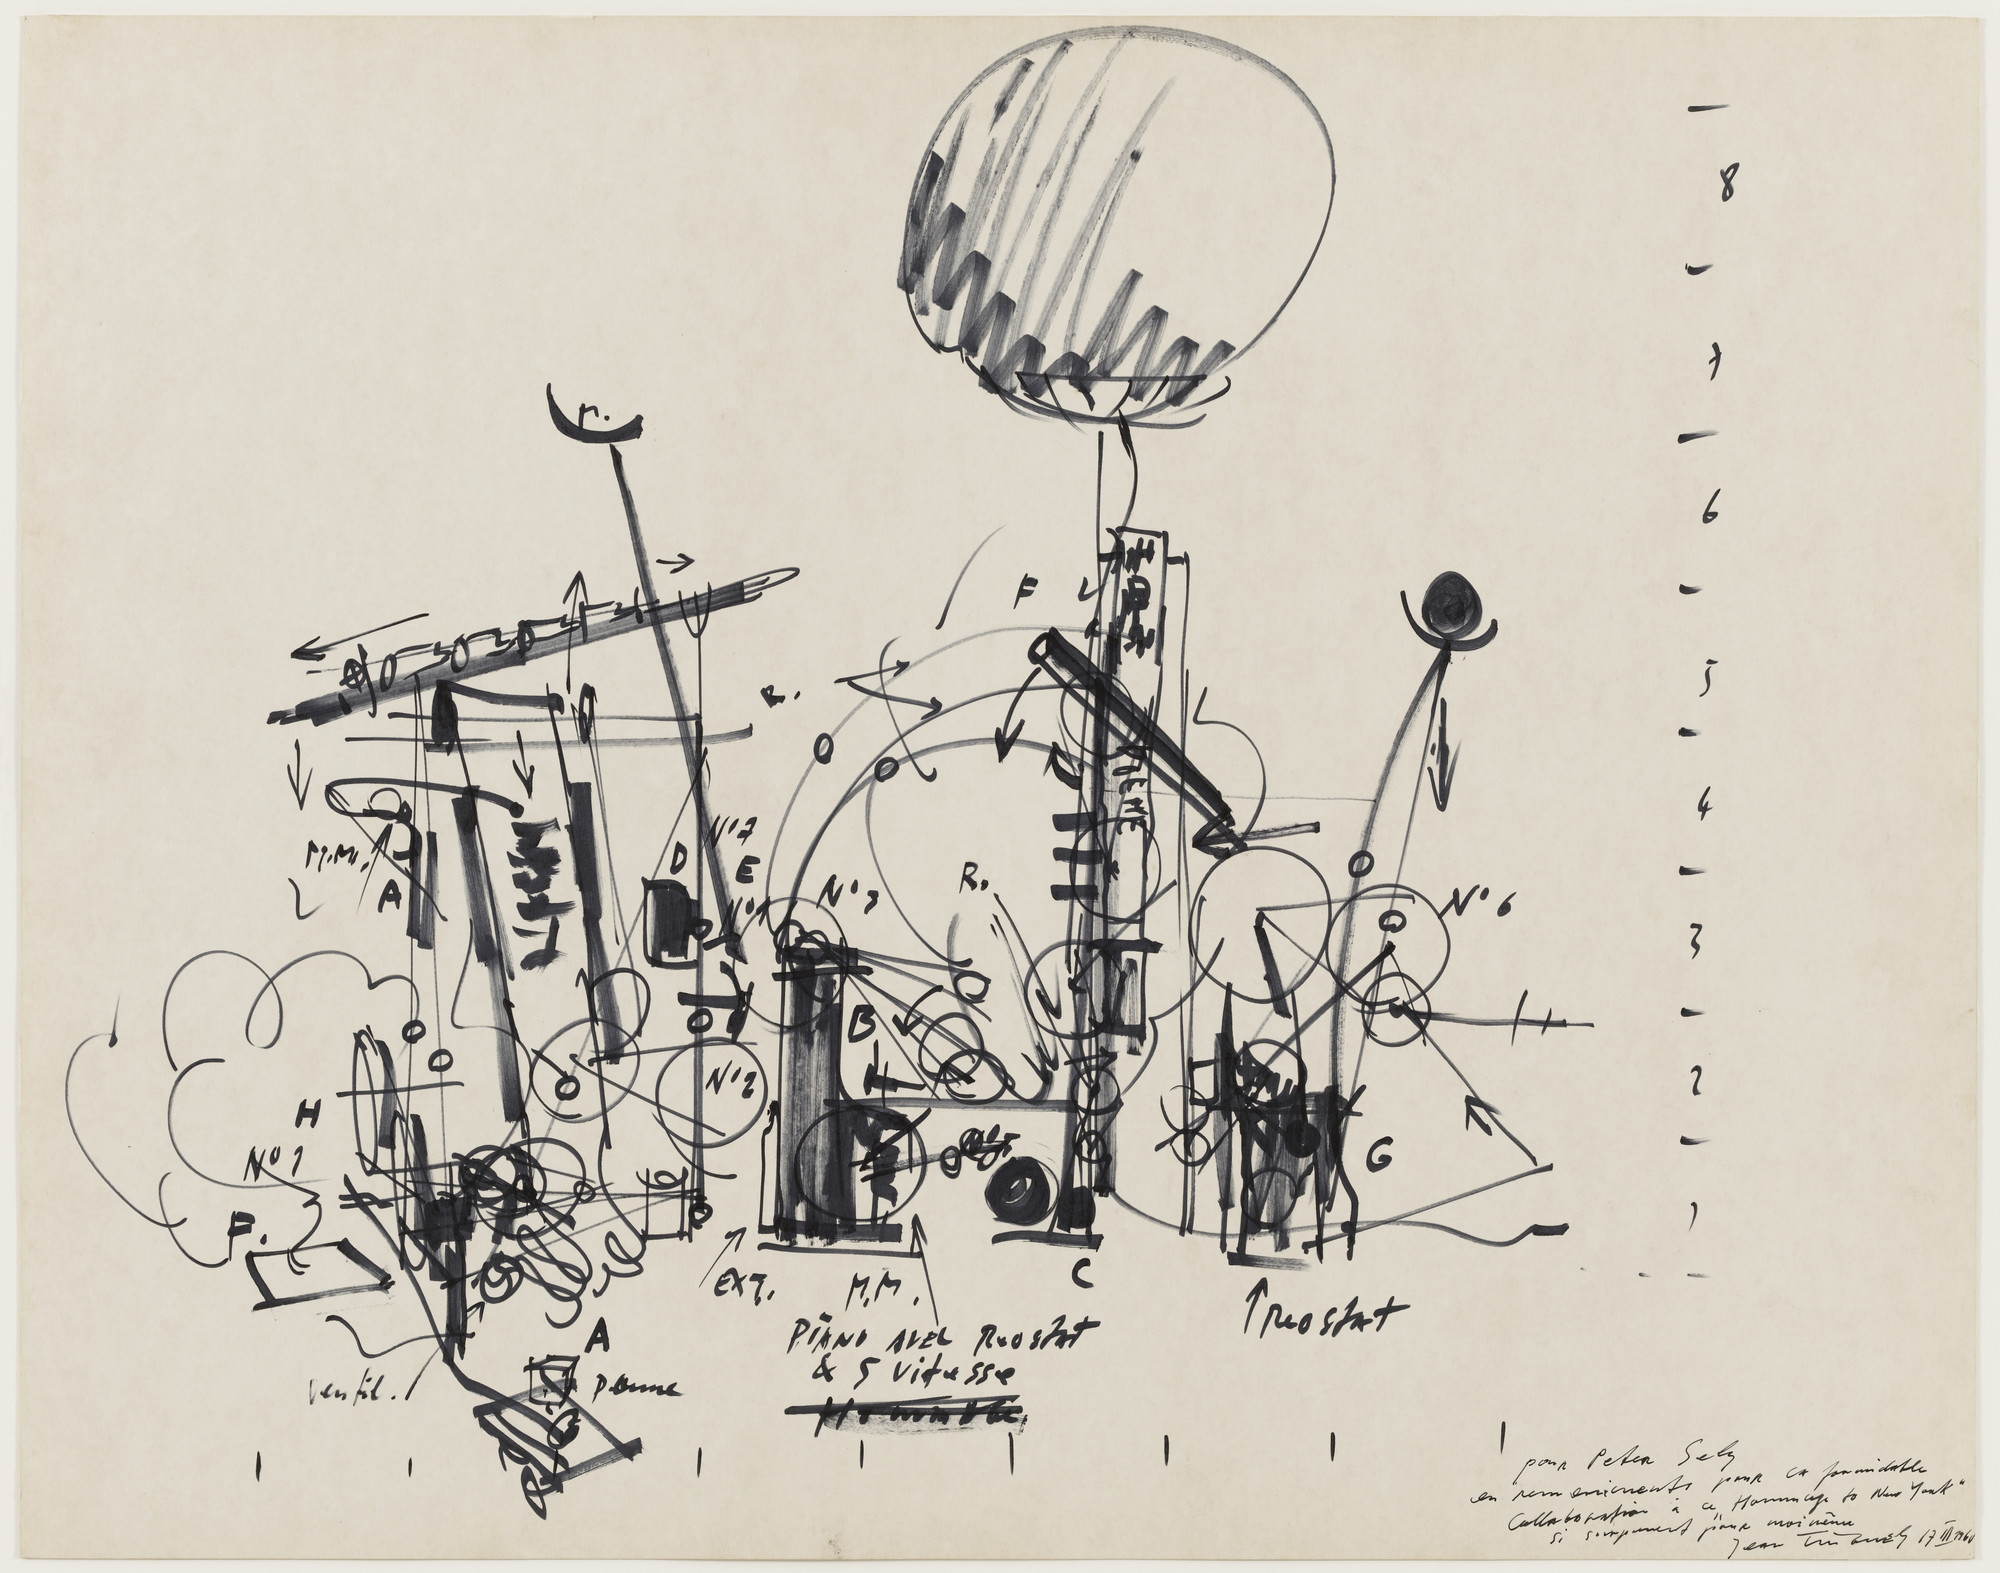 Jean Tinguely. Sketch for Homage to New York. 1960